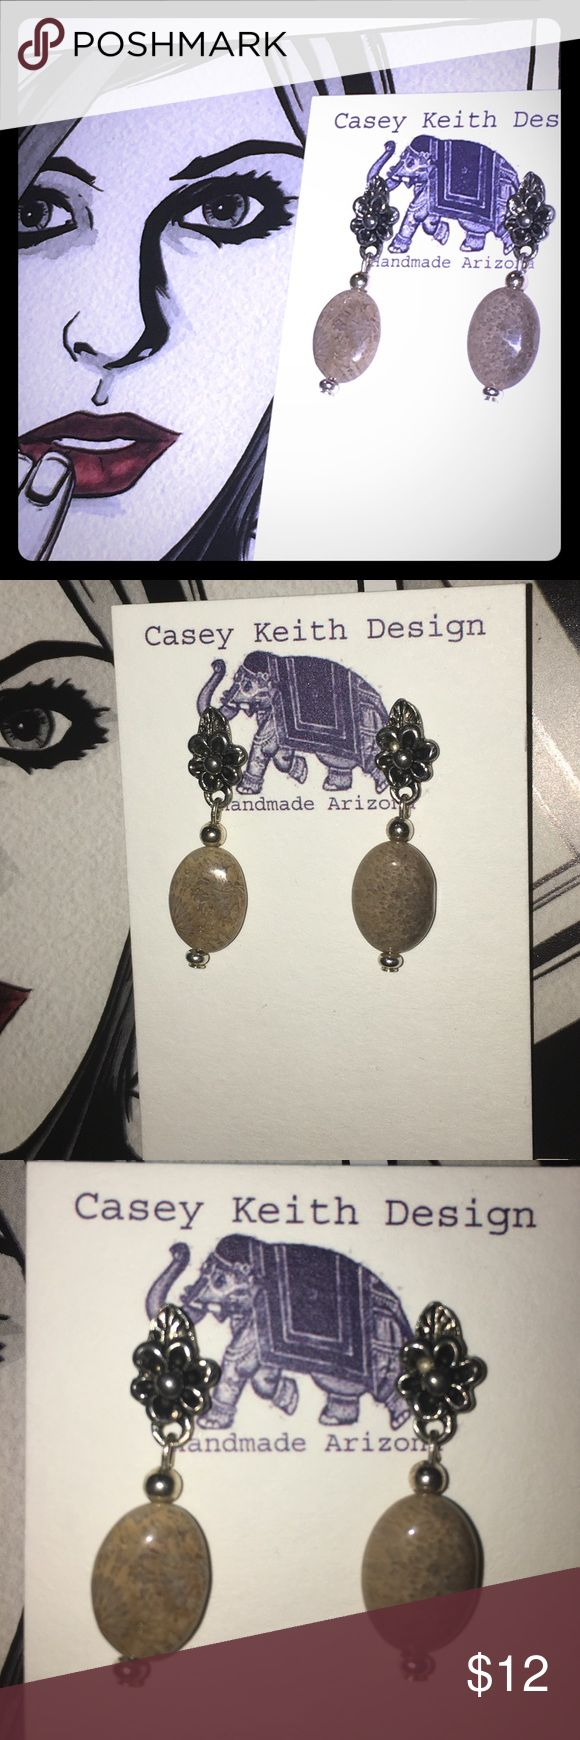 "Ocean Blossom Earrings Polished ocean Jasper (fossilized coral) hangs tight to the lobe off of floral silver plated post earring. A charming way to show your support & reverence for ocean coral by wearing it in fossilized form on your ears. 1"" drop. Purchase includes Artists signature gift packaging. Casey Keith Design Jewelry Earrings"